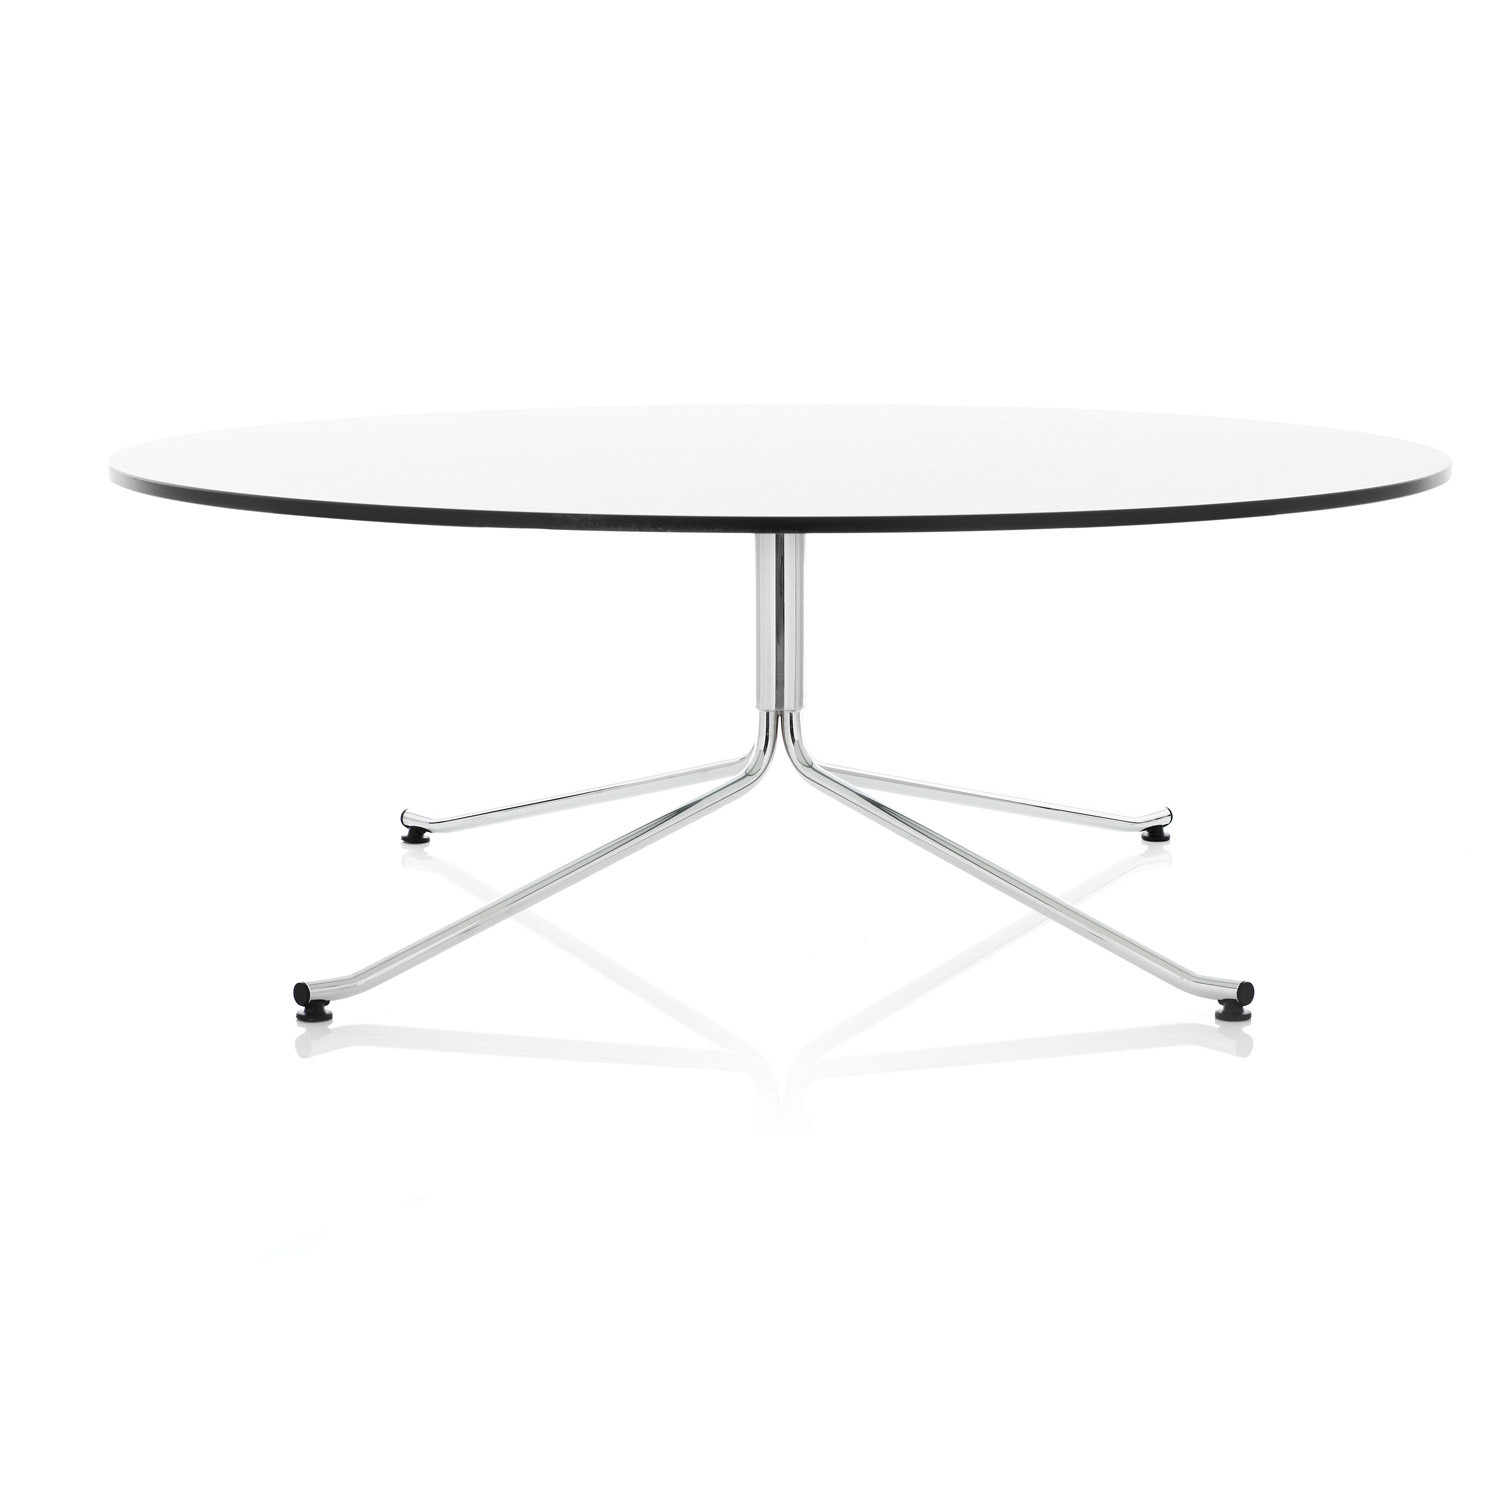 Lammhults Millibar Lounge Table